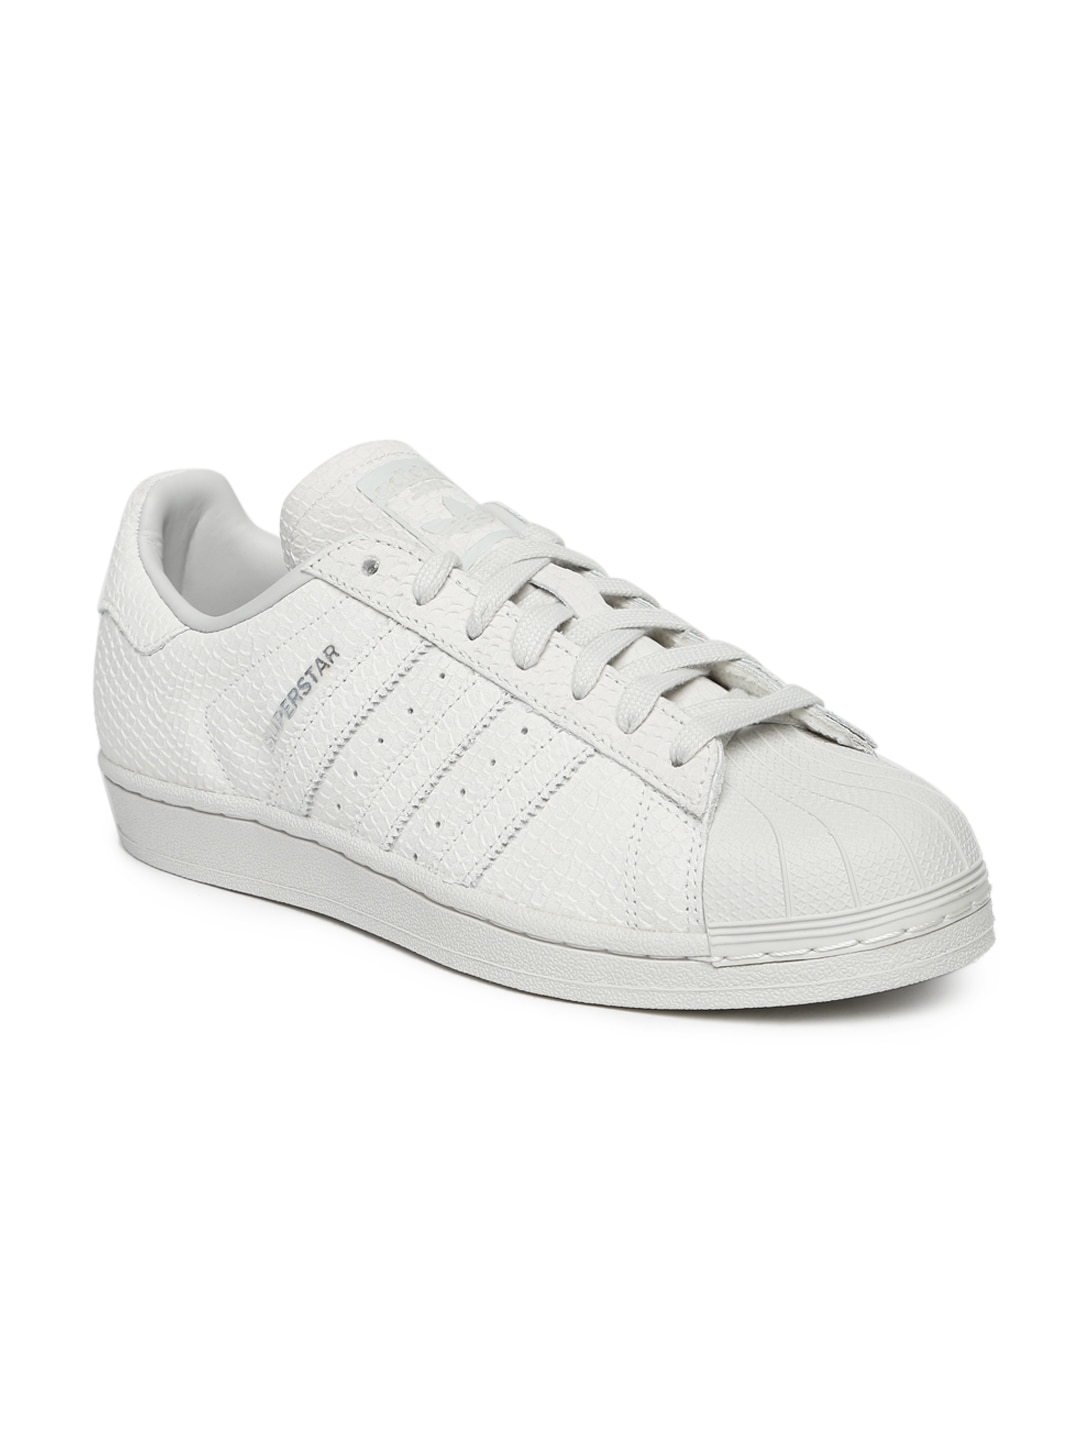 huge selection of dea91 3cbbb adidas - Exclusive adidas Online Store in India at Myntra